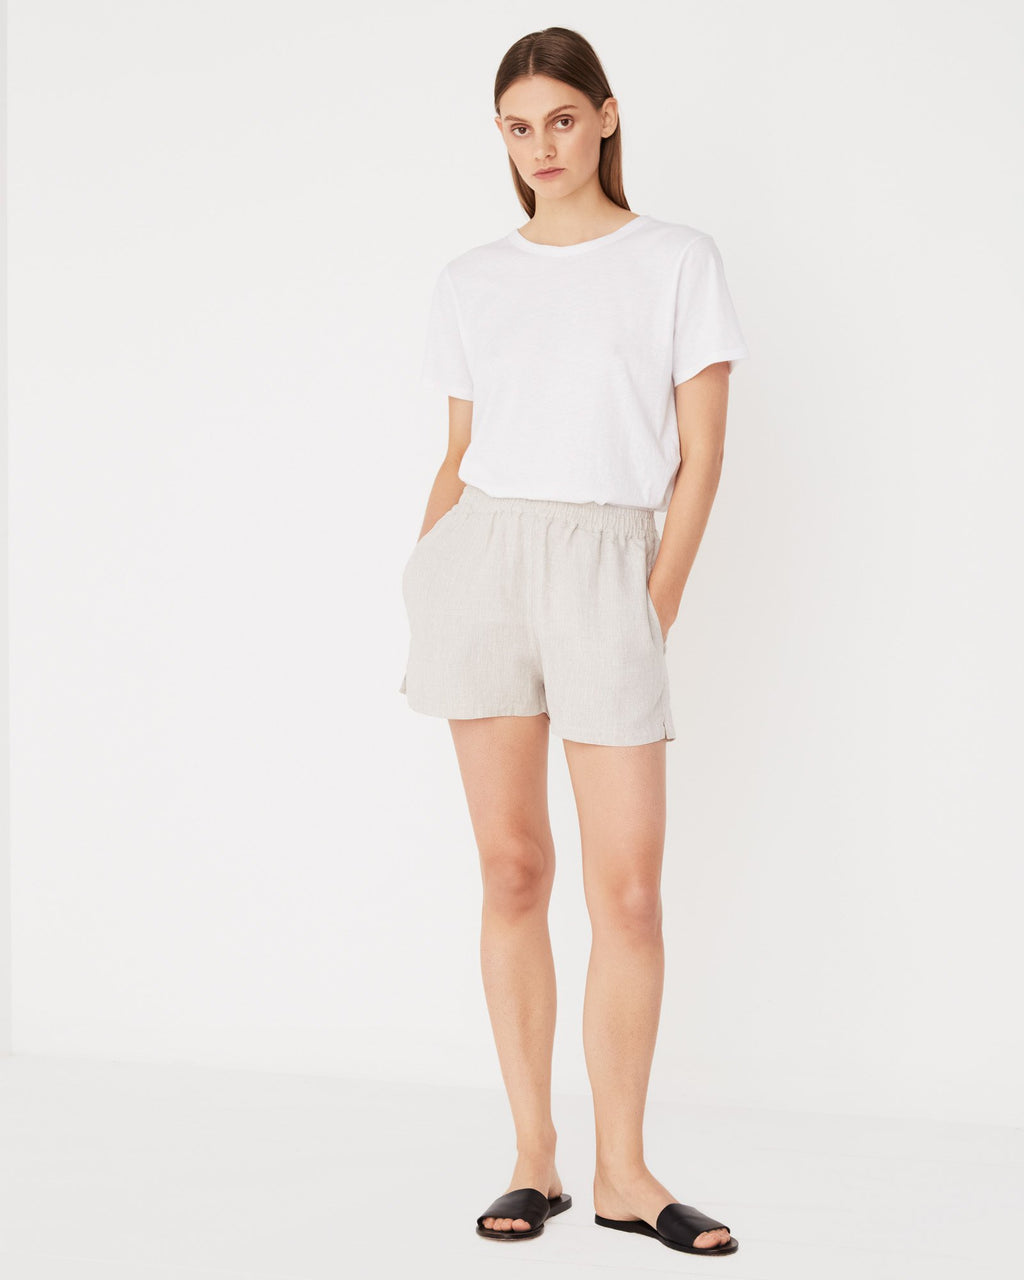 Basis Linen Short / Oat Marle